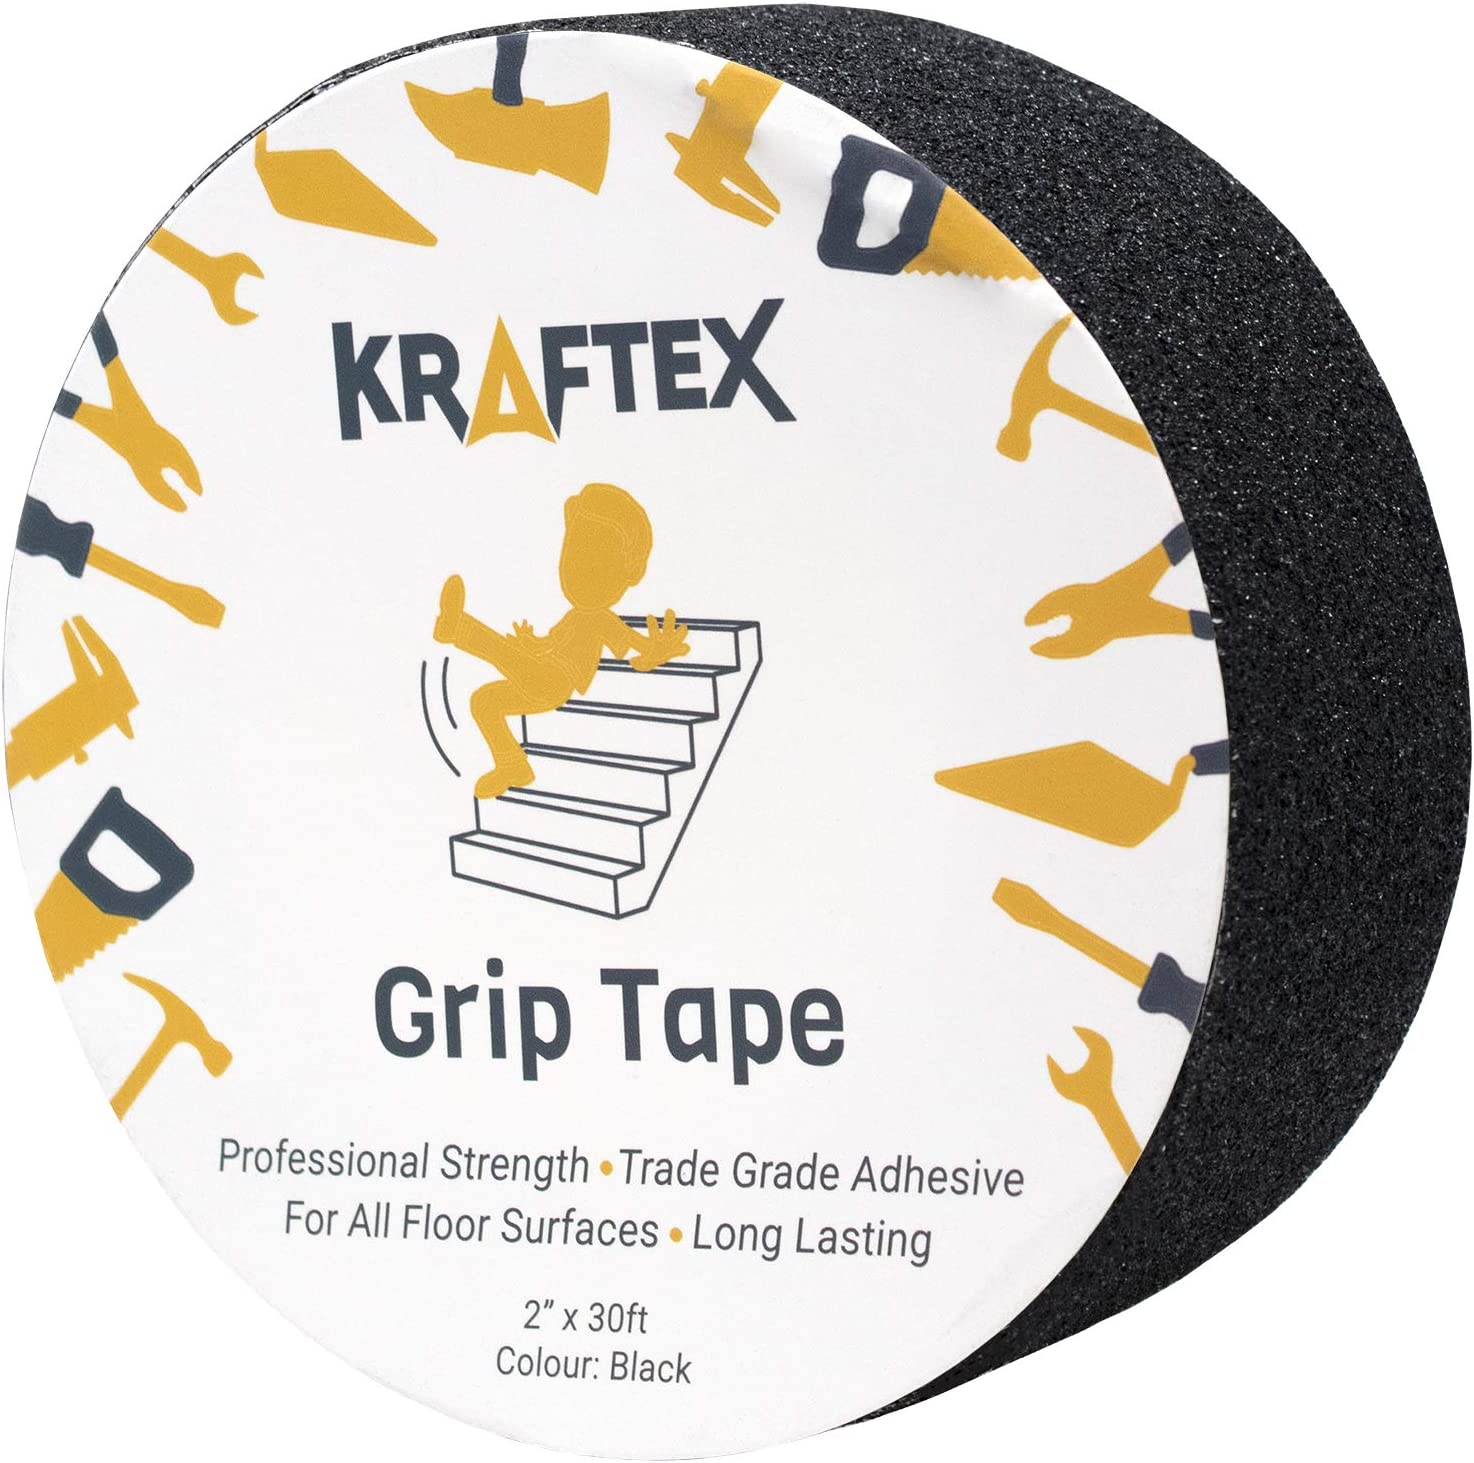 """Grip Tape for Stair Nosing Indoor Stairs /& Outdoor Stair Treads Non-Slip Tape and Skateboard Tape. Anti Slip Grip Tape 4/"""" Black Non Slip Friction Tape Great Stair Runners for Wooden Steps /& Stairs"""